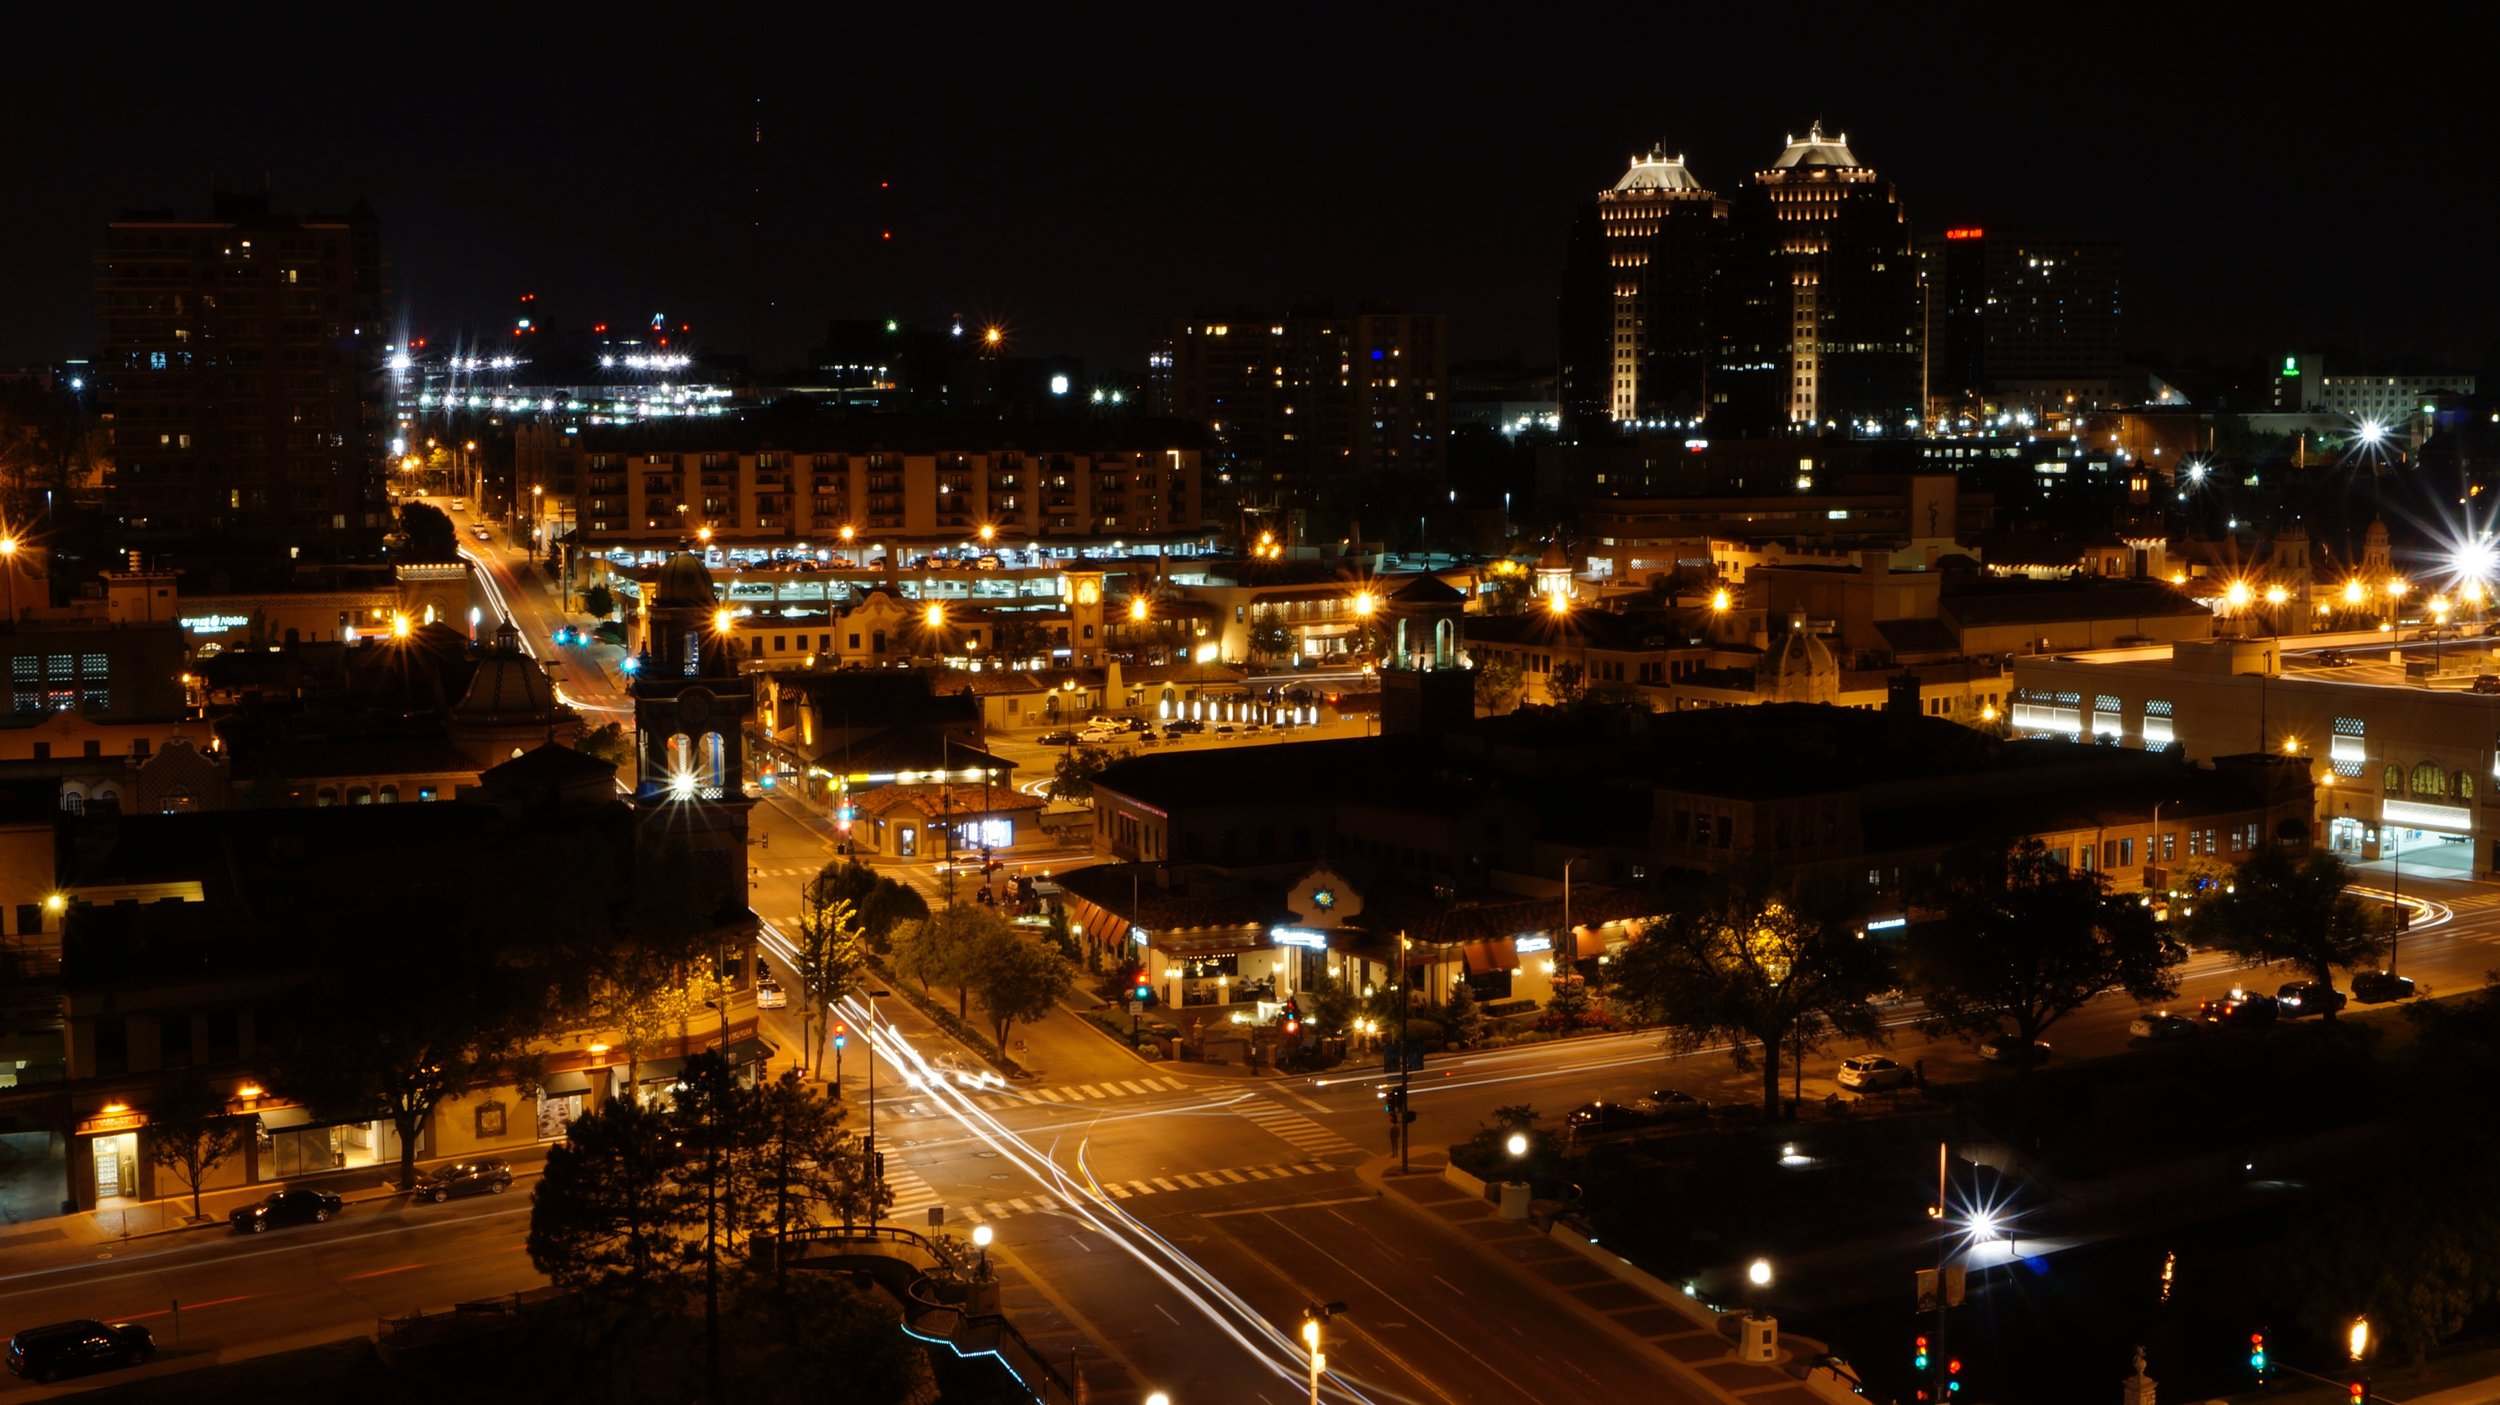 In this image taken overlooking Kansas City's Country Club Plaza, I looked to capture the overall quietness of the nighttime scene, but the intermittent busyness is clear when looking at the light trails and even human silhouettes captured by the long exposure.